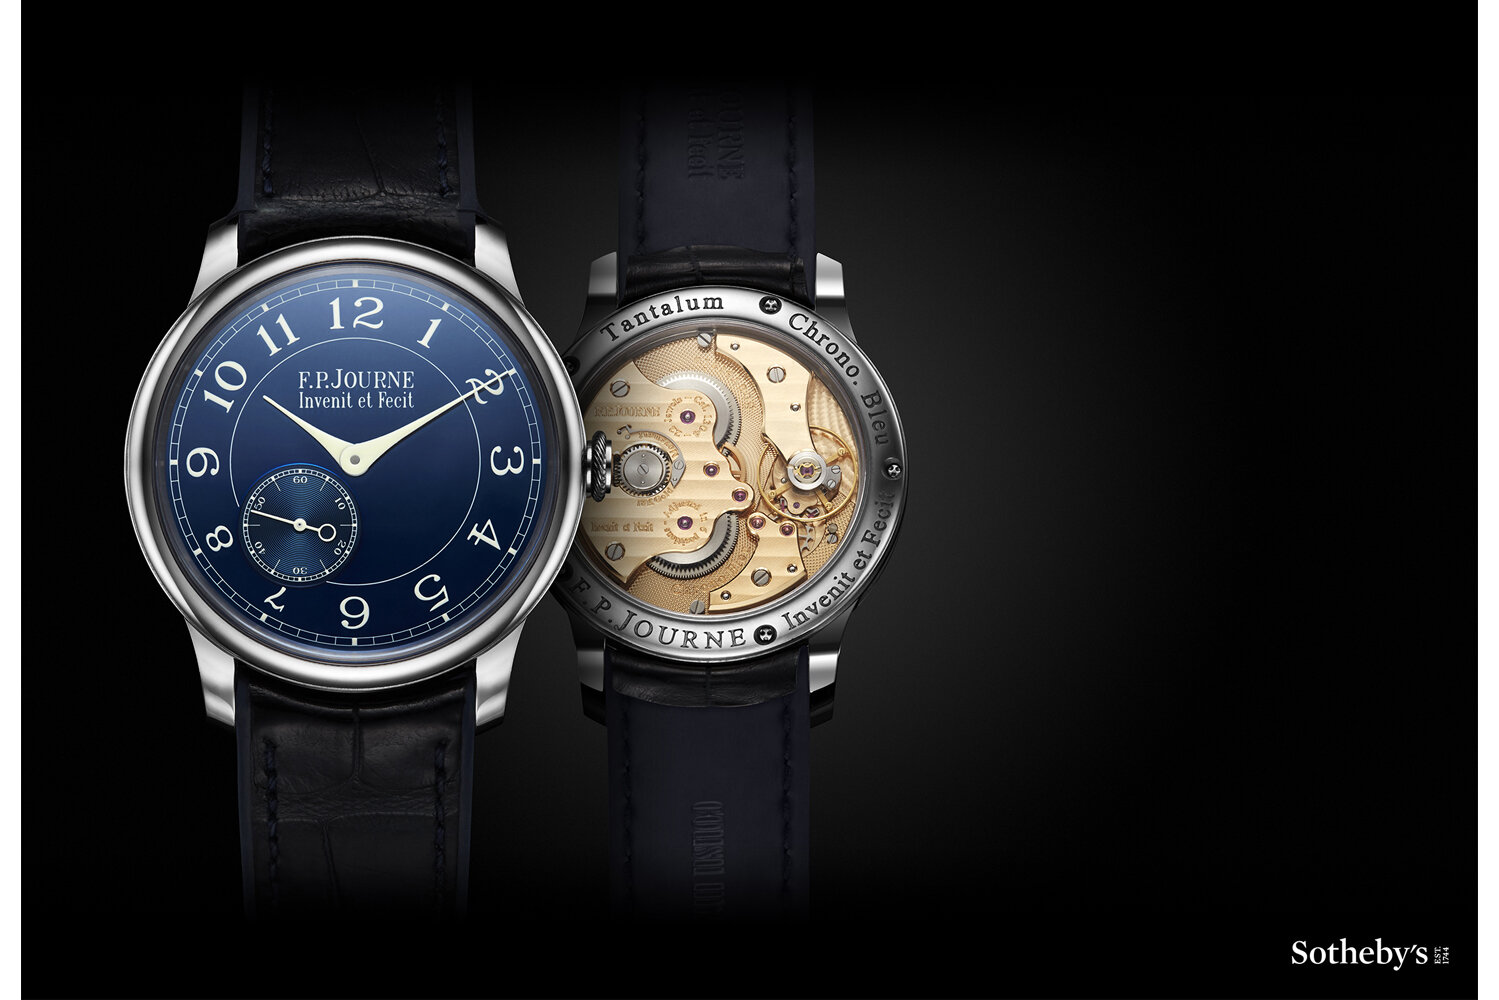 F_P_Journe_Watch_Sothebys.jpg